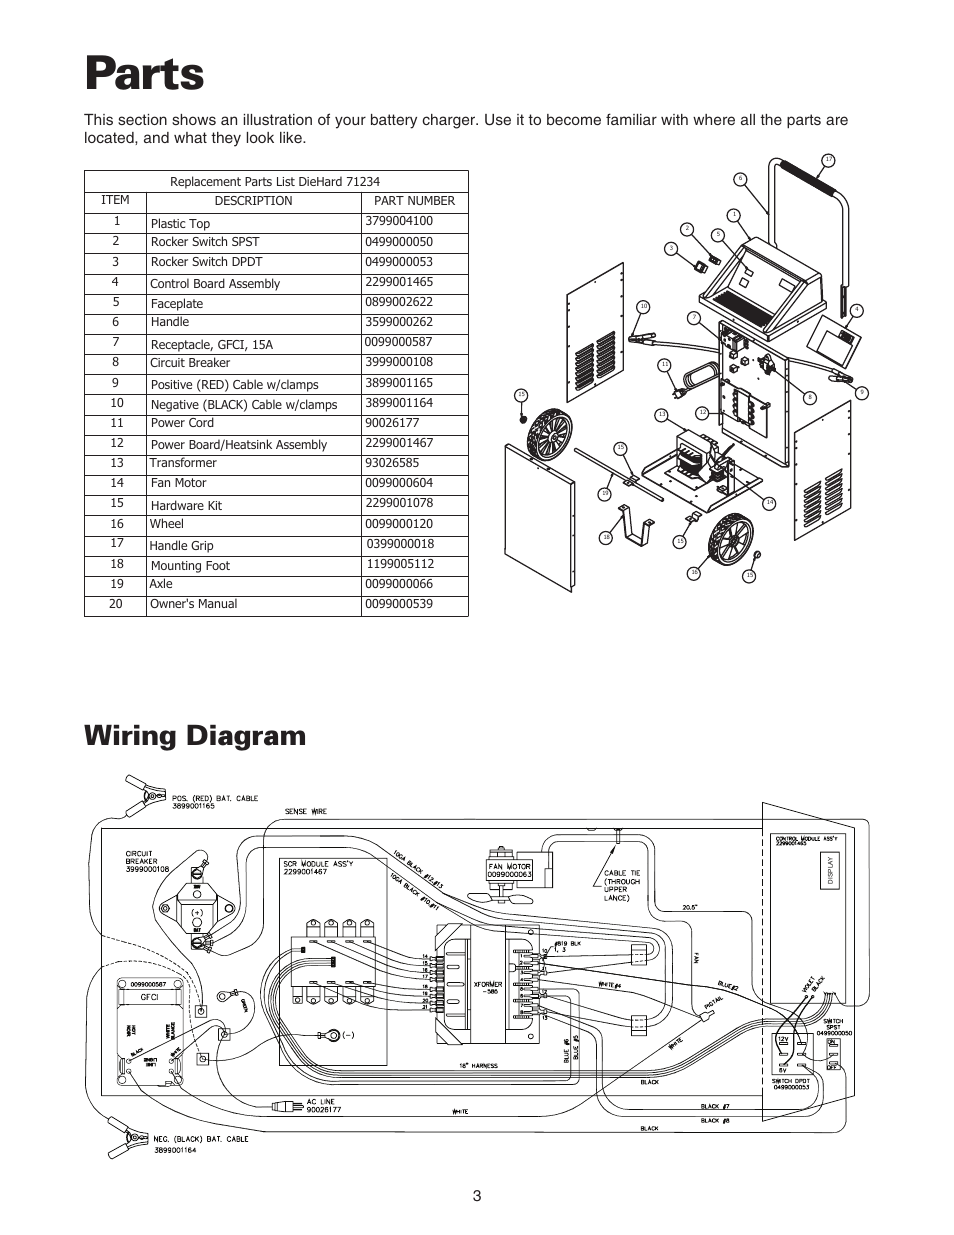 Diehard Battery Charger Wiring Diagram House Wiring